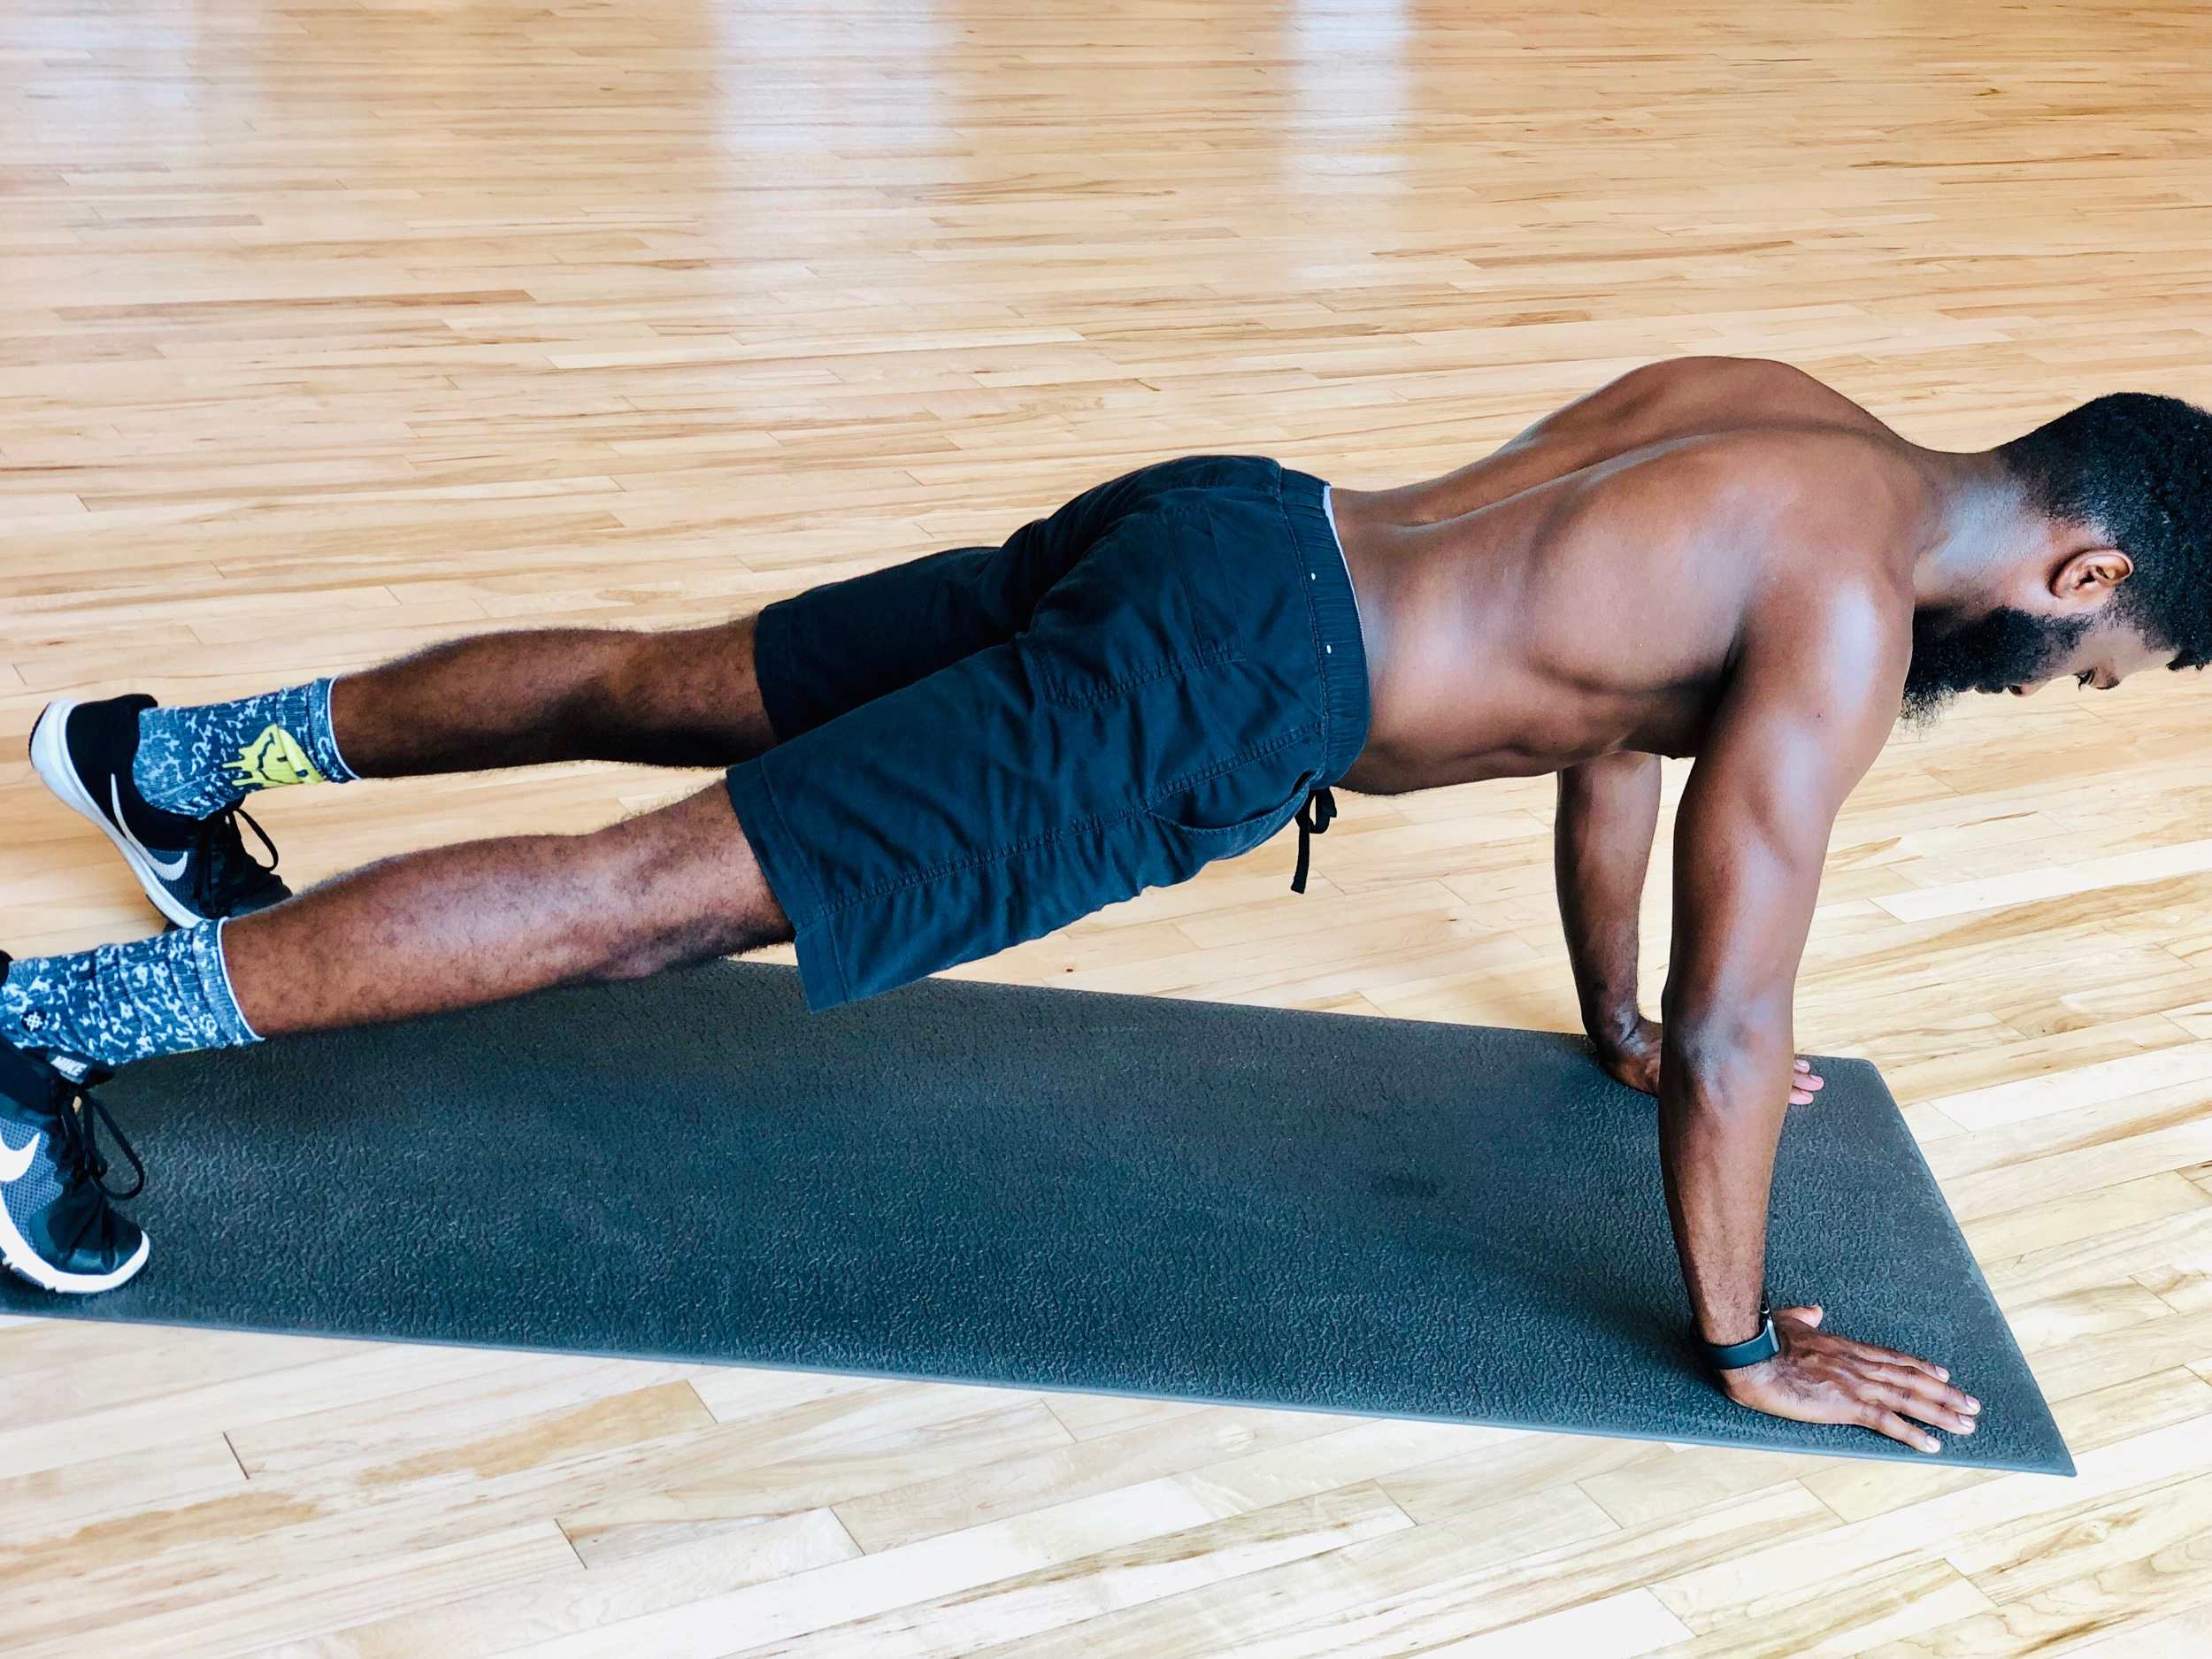 Plank: Increase difficulty to modified version.